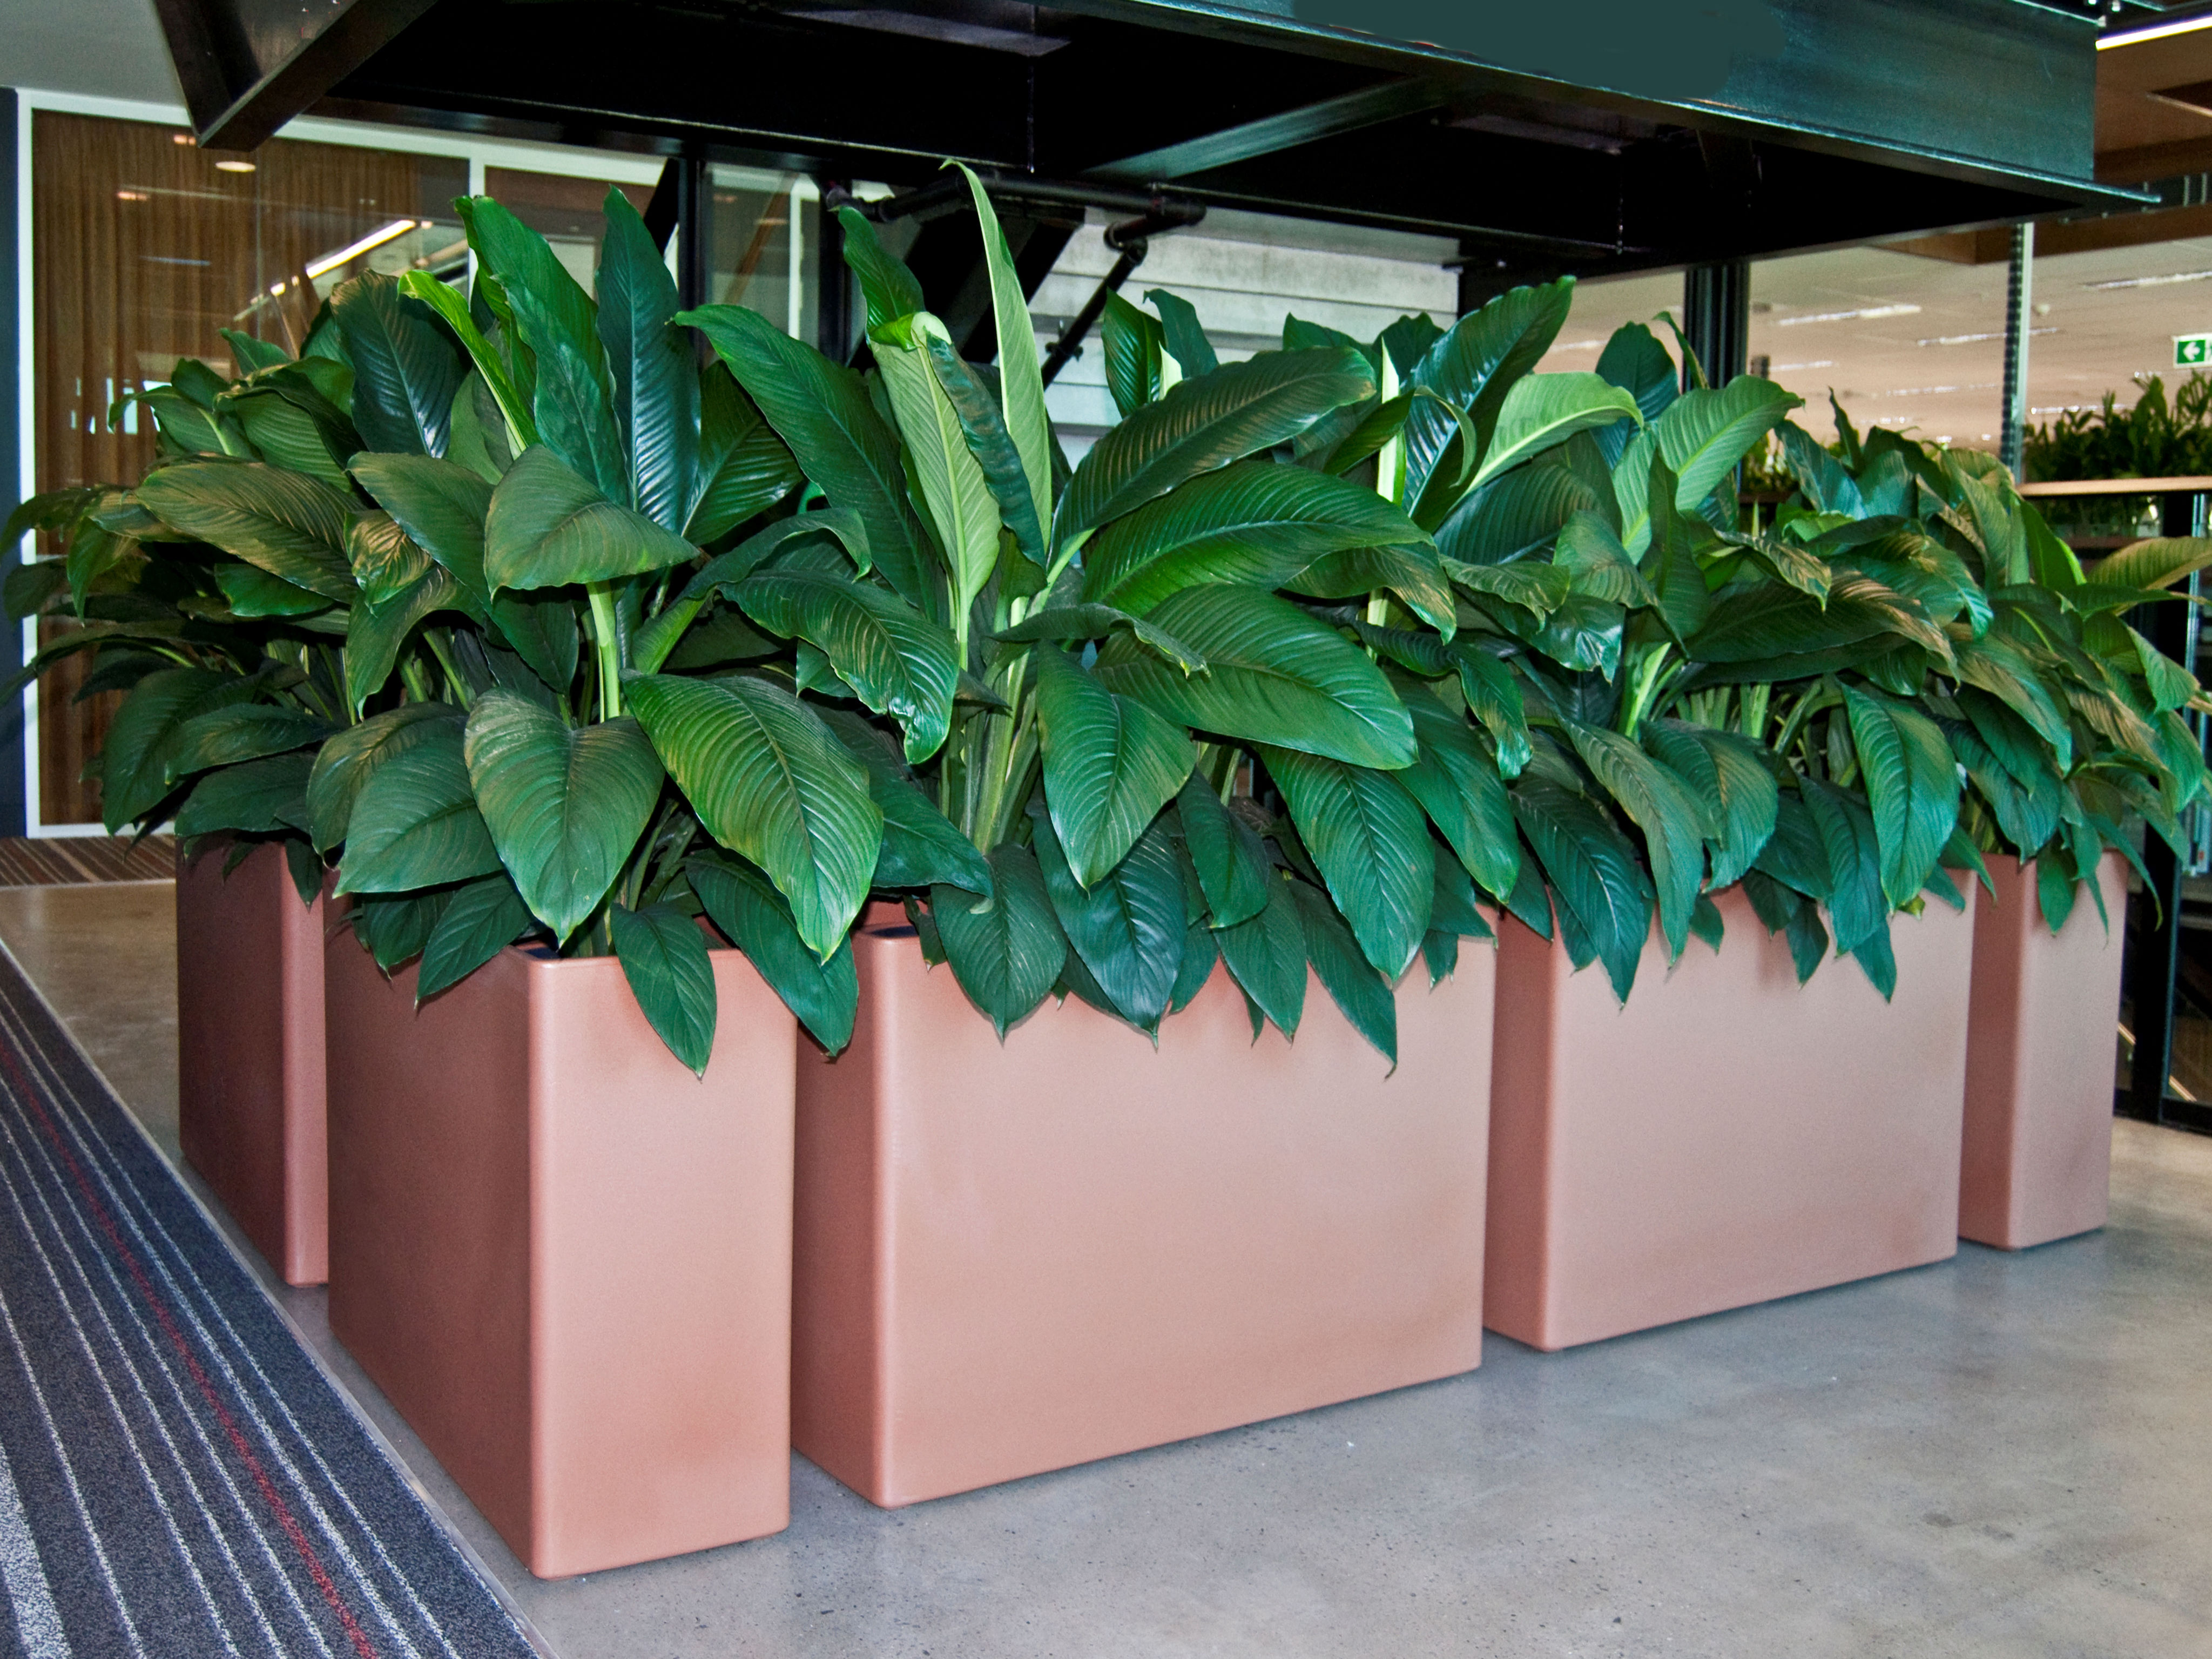 Showing tan coloured Urban 10 Planters with Spathiphyllum Sensations.